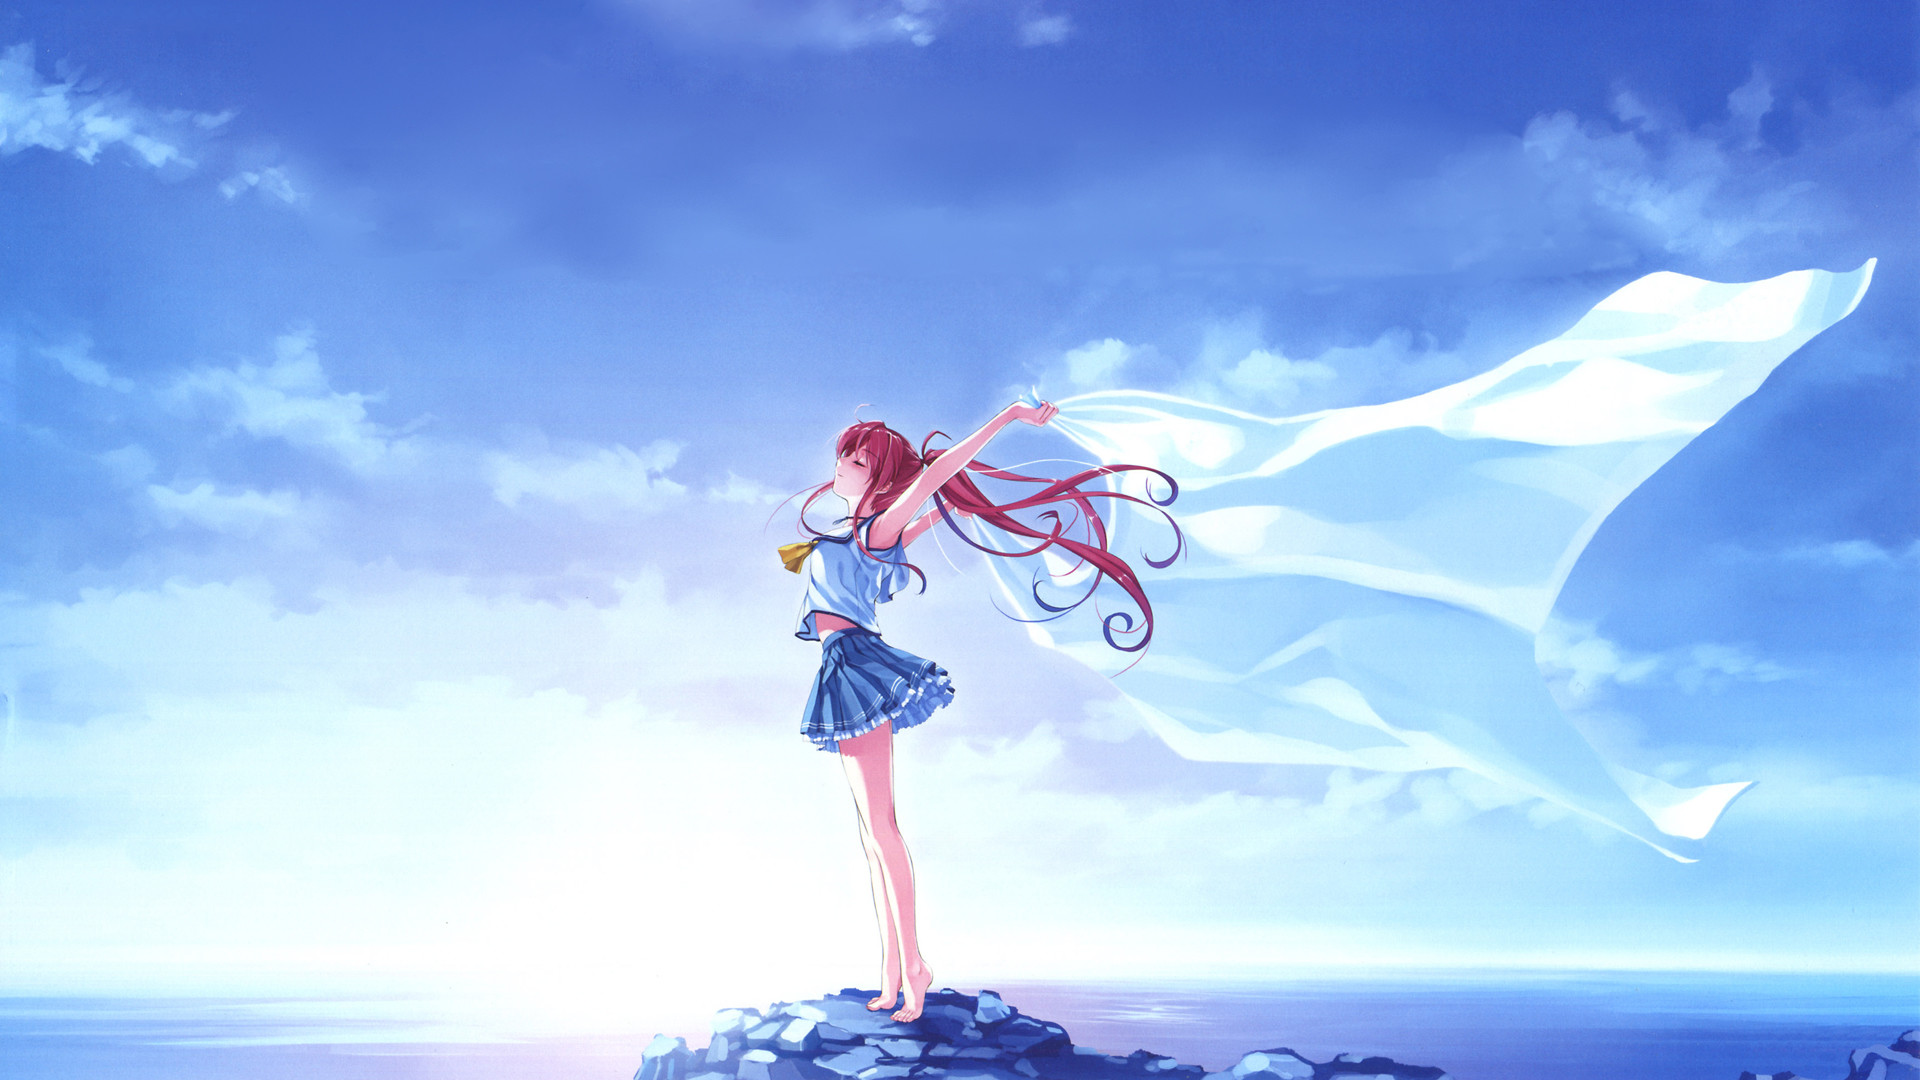 Res: 1920x1080, Anime - Deep Blue Sky & Pure White Wings Anime Wallpaper